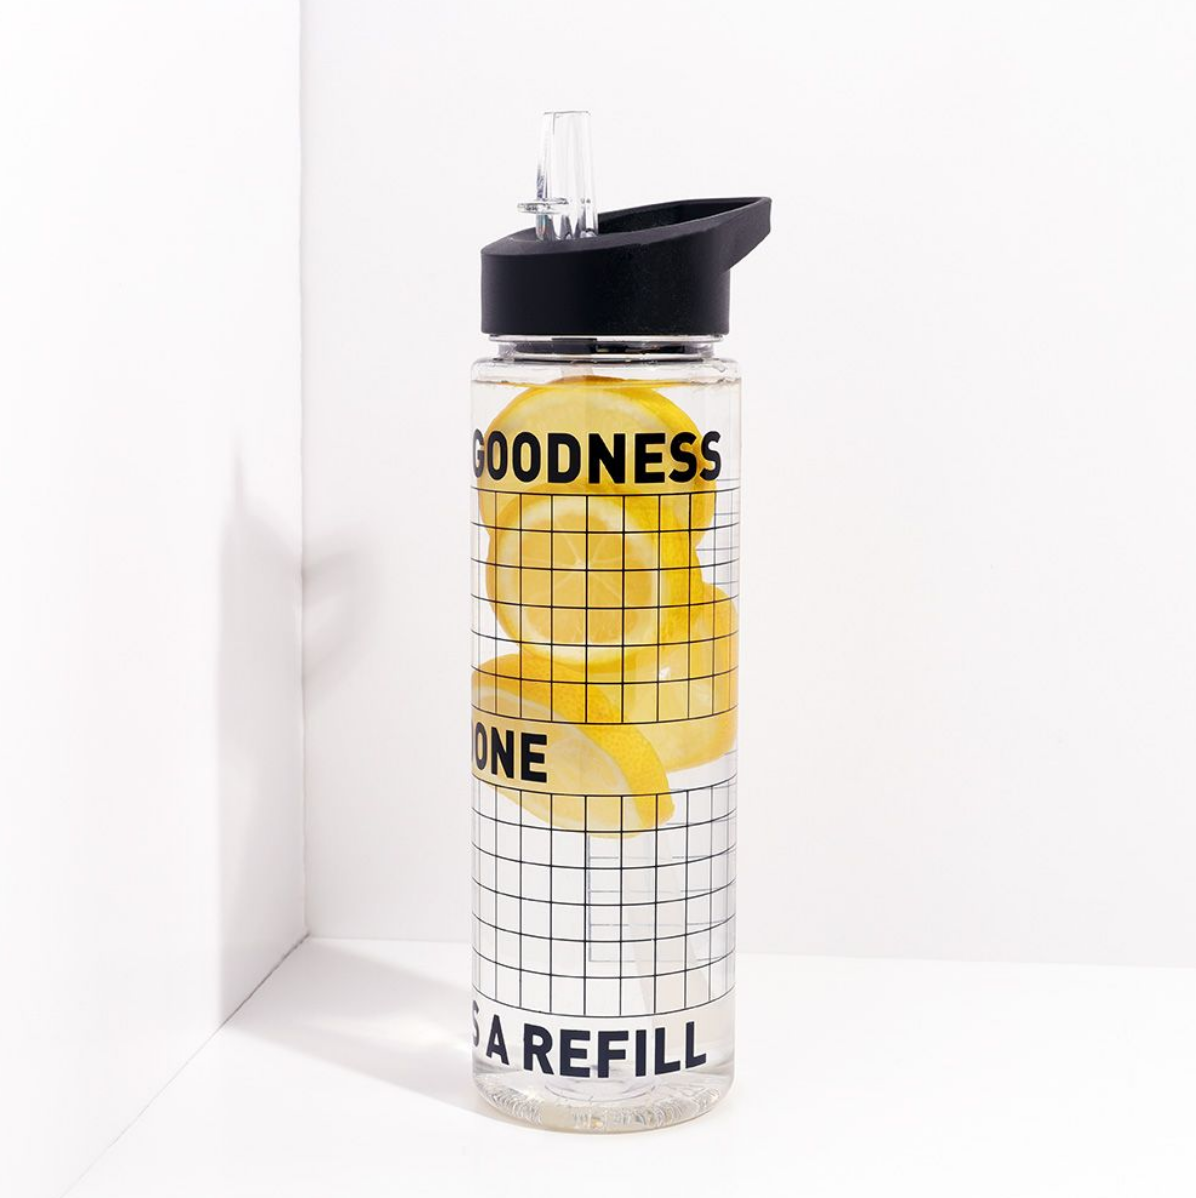 Refill water bottle by Paperchase